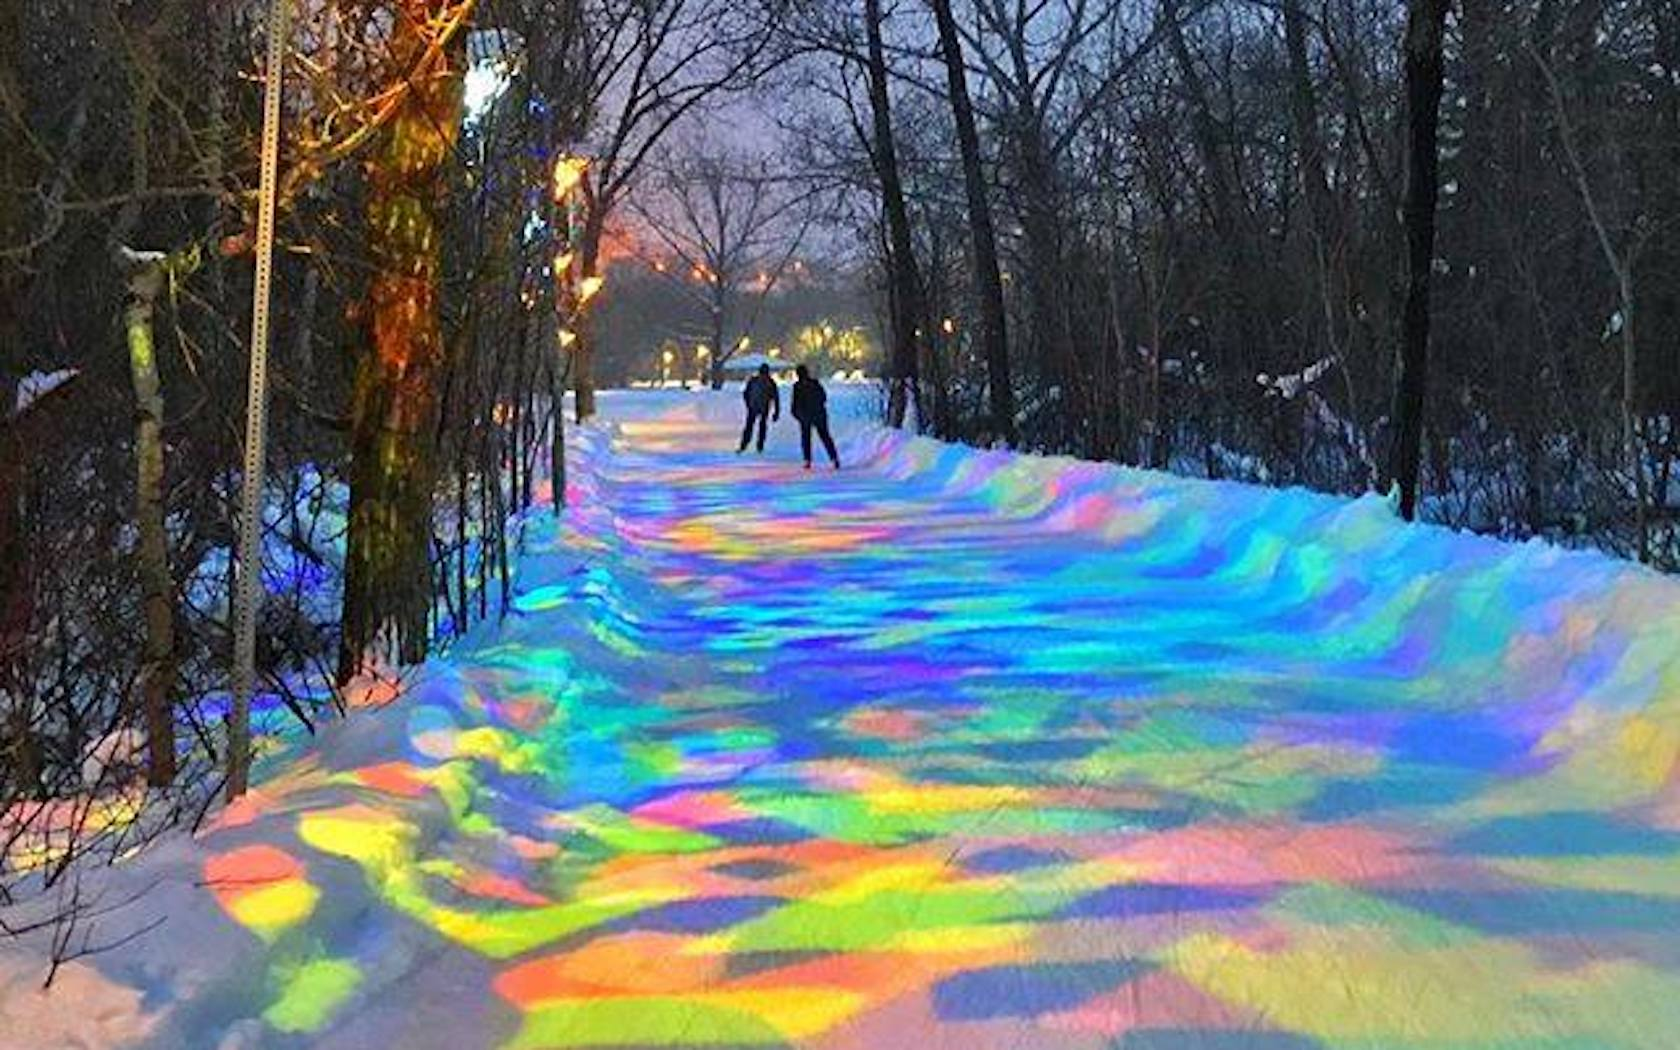 You Just Have To Visit This Magical Outdoor Skating Rink ...